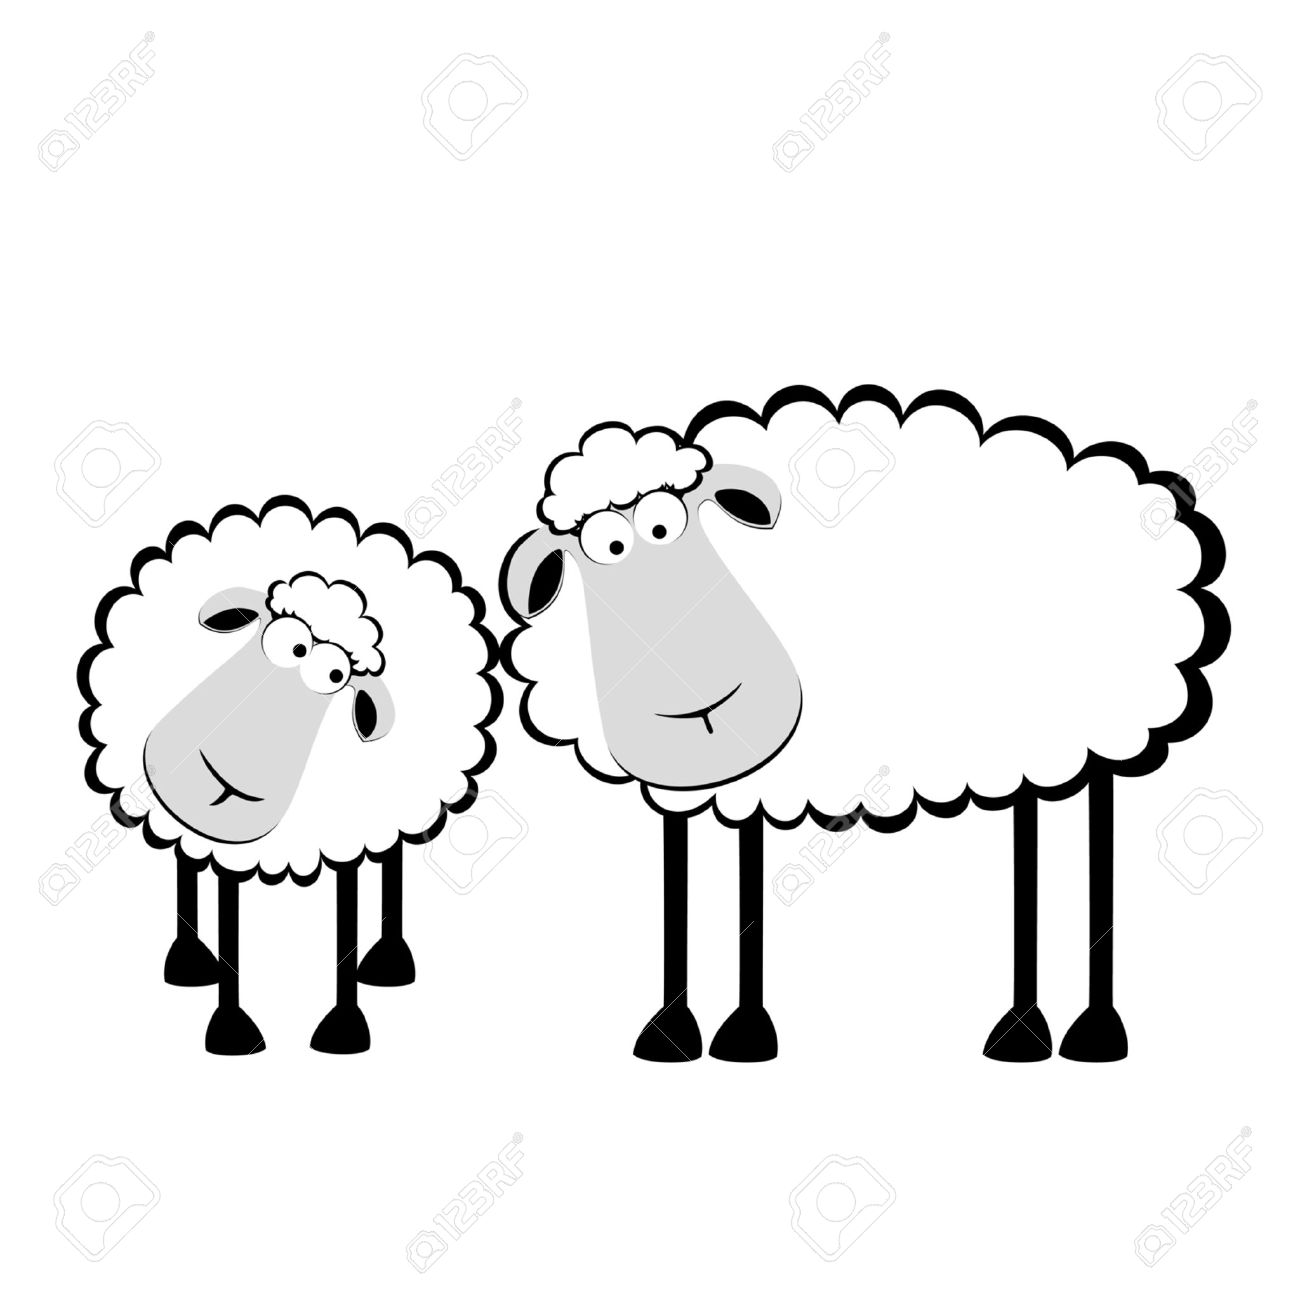 Flock Of Sheep Clipart